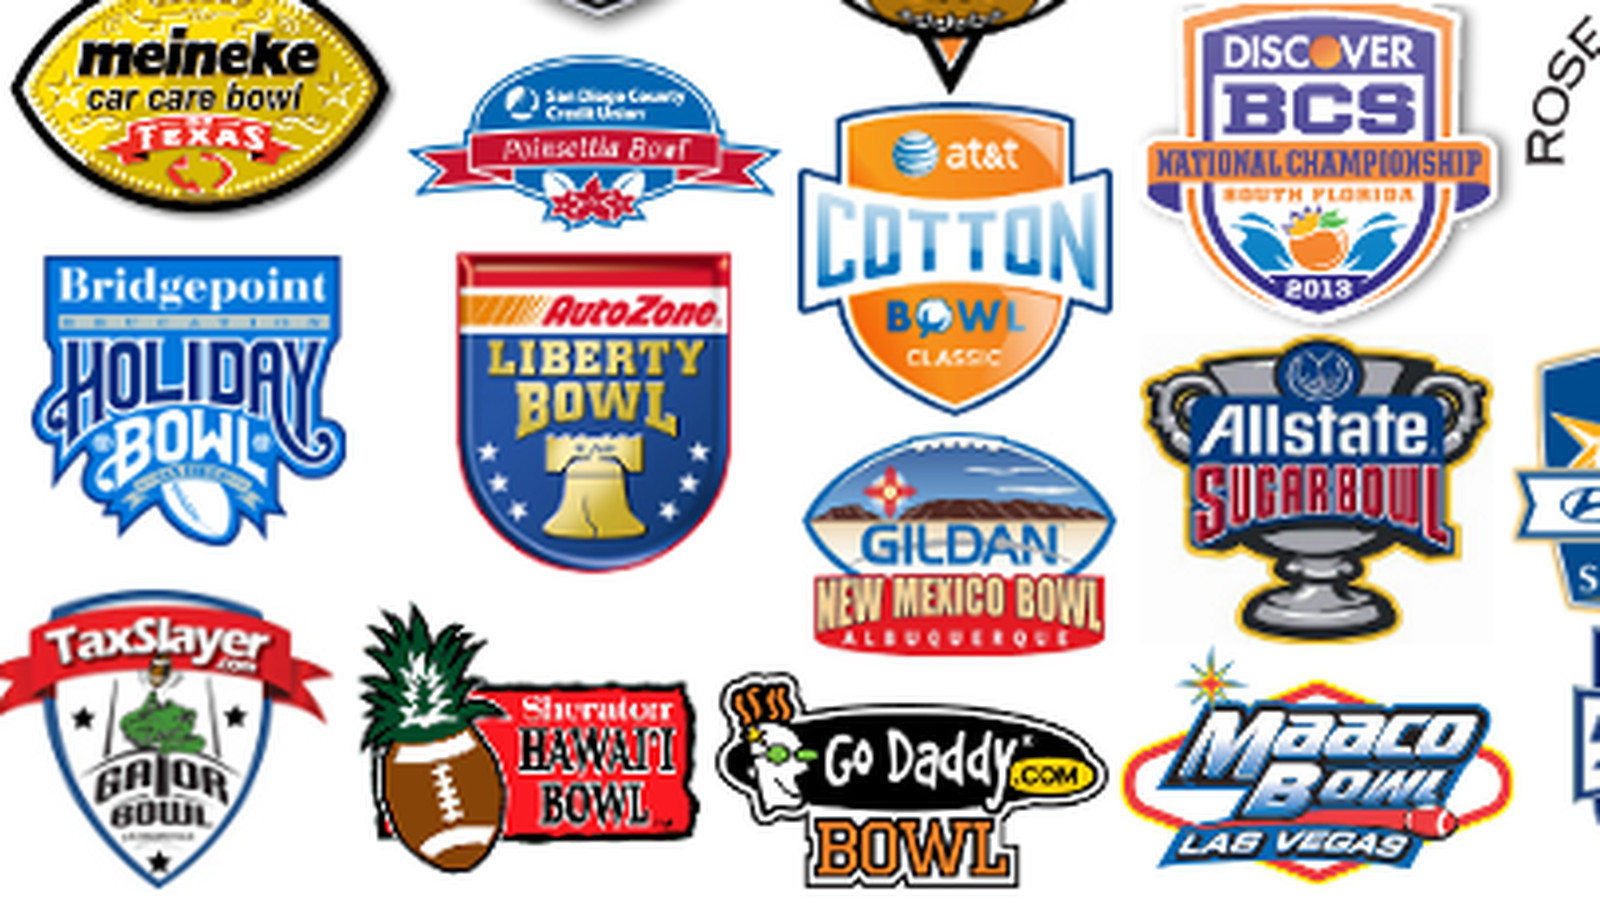 2012 13 college football bowl projections Trying to keep track of all the college football bowls here you can find every bowl this season, along with who is playing, when, and where you can watch also, times college football columnist chris dufresne gives his pick for each bowl game, so you can follow along and see how he does all the way through the bcs title game on jan 7.